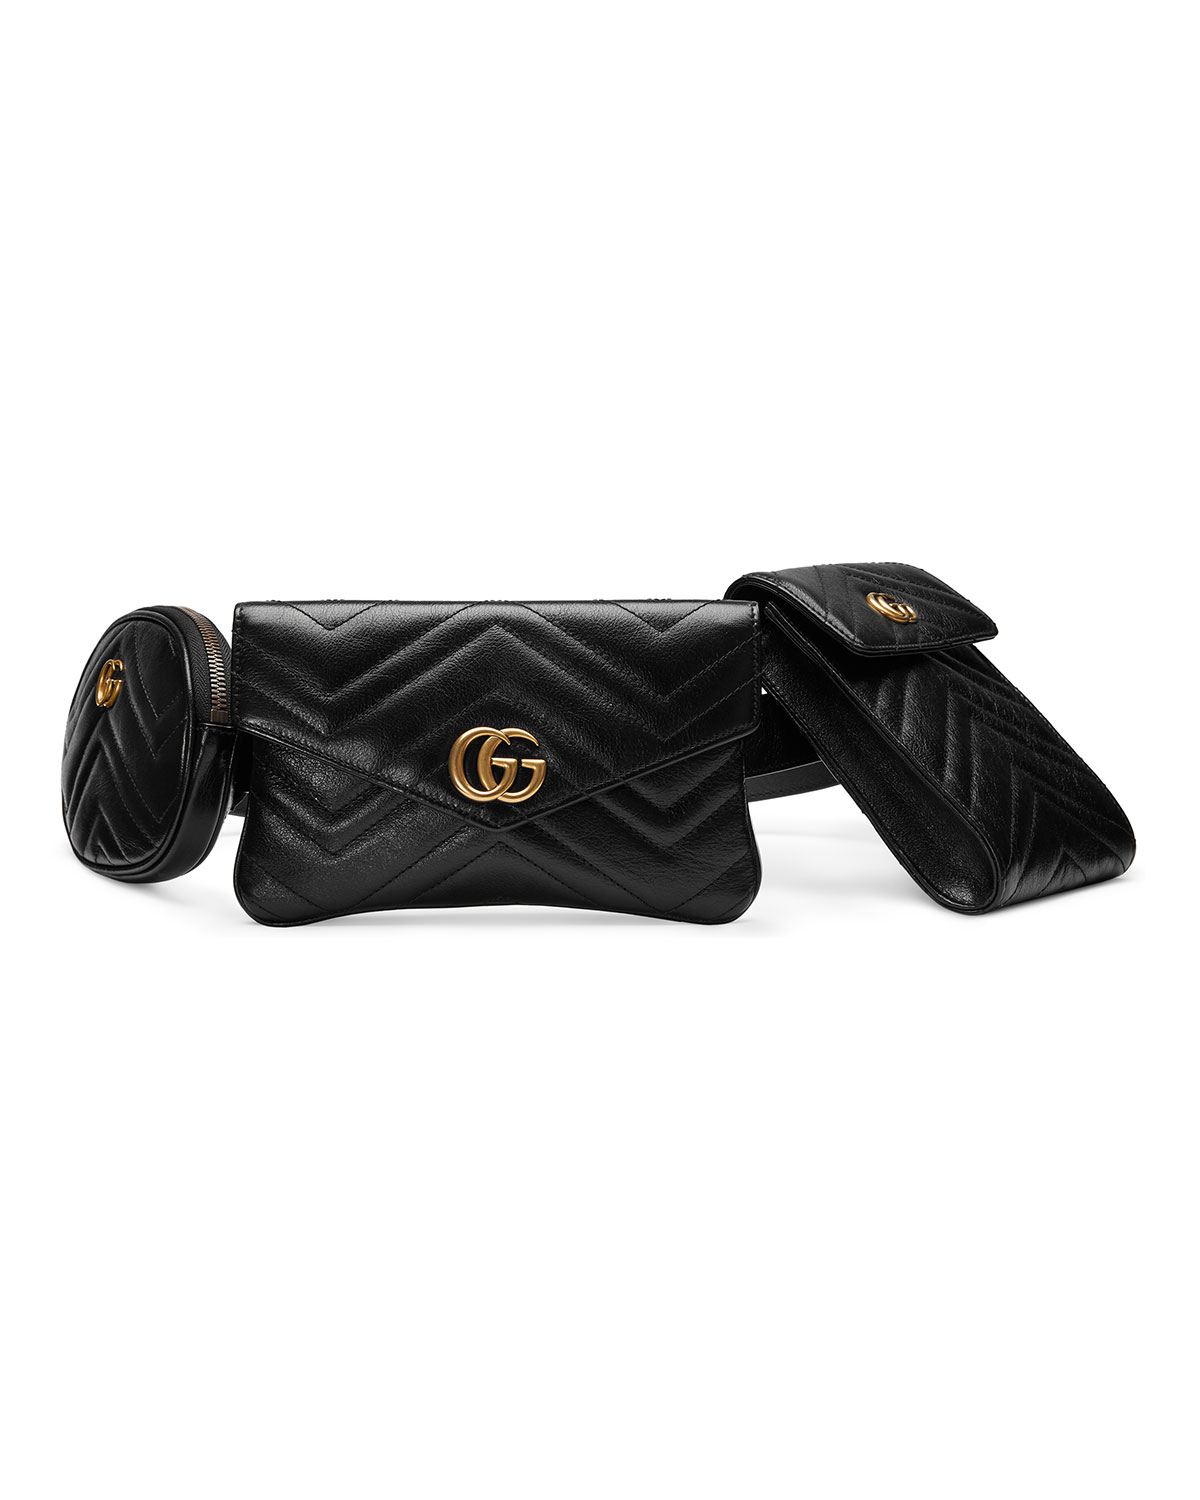 d700bf4bcc27 Gucci GG Marmont 2.0 Multi Belt Bag/Fanny Pack | Neiman Marcus